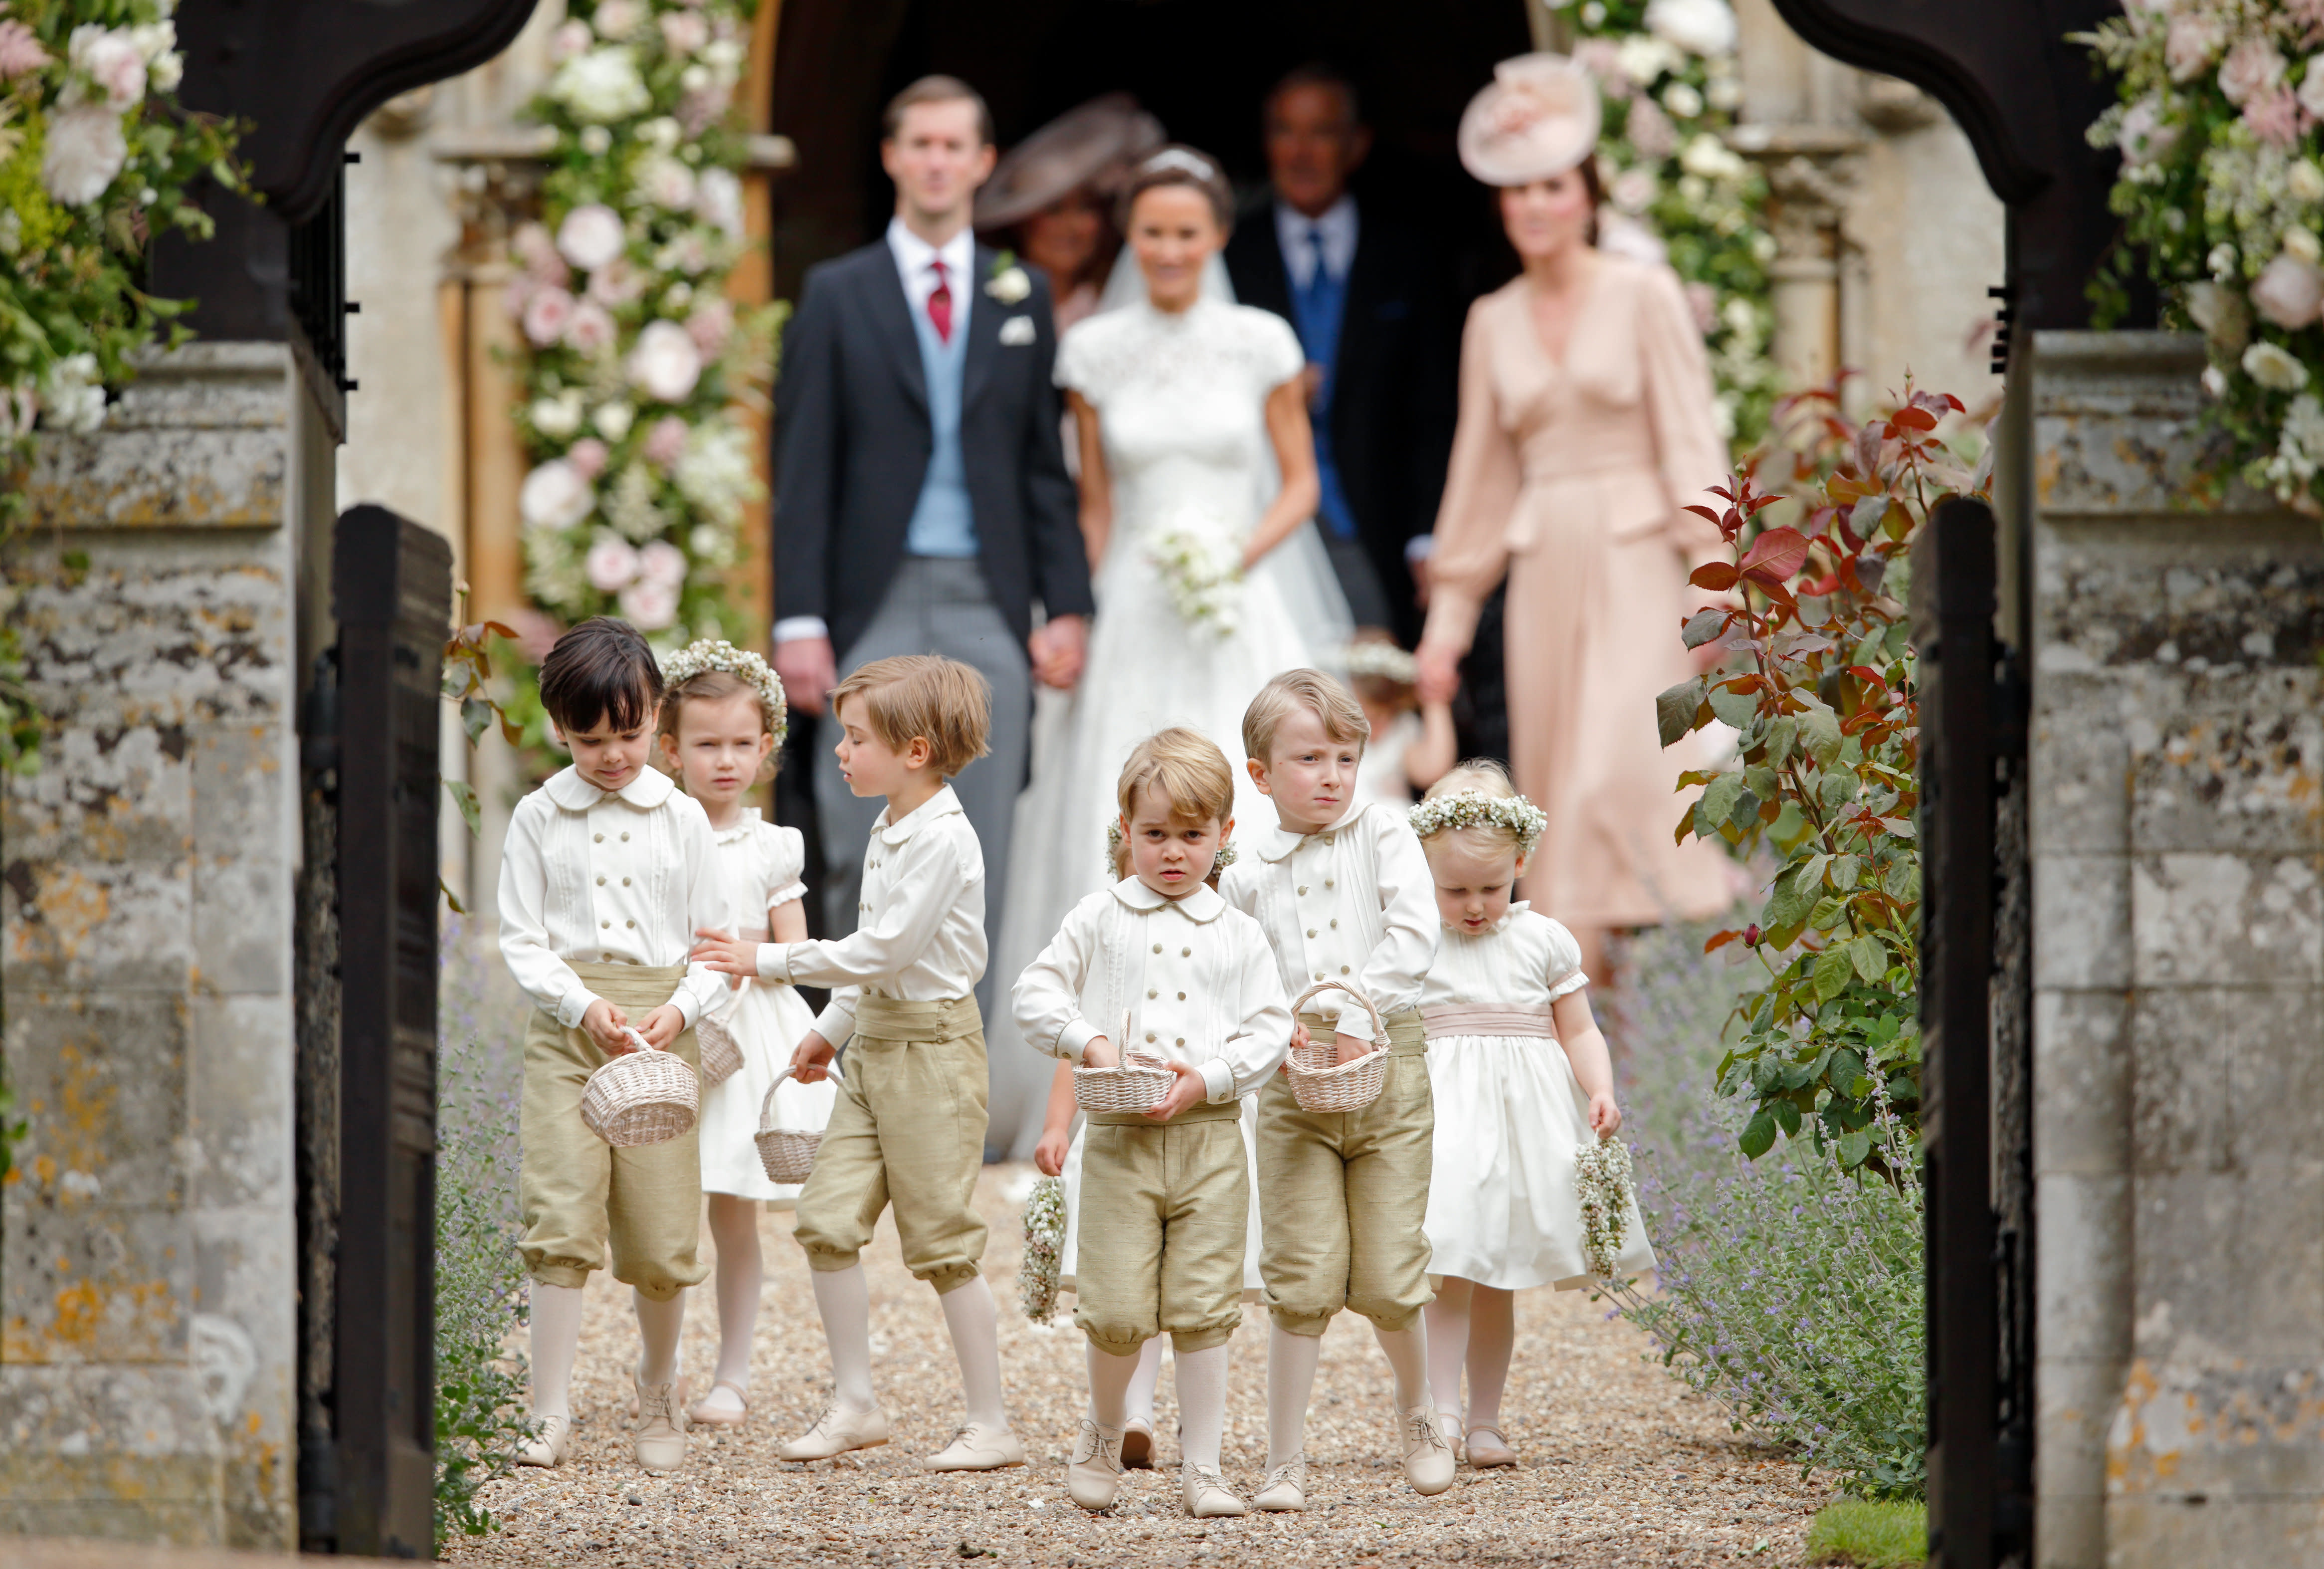 Prince George reporting for pageboy duty at his aunt Pippa Middleton's wedding in 2017. (Max Mumby/Indigo via Getty Images)